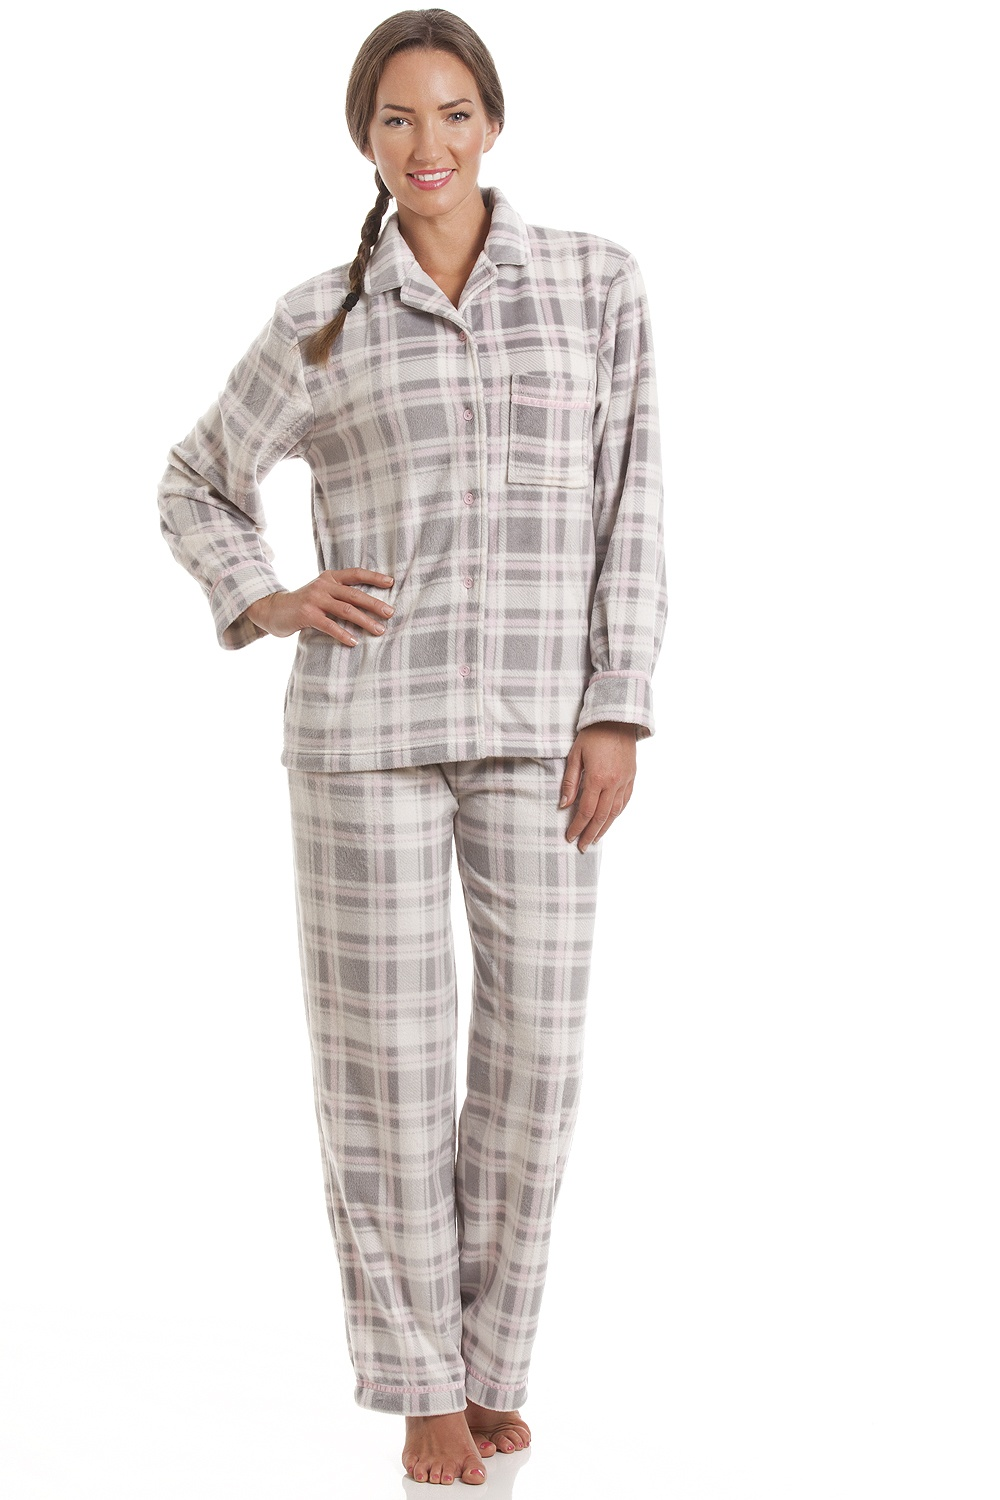 Find great deals on eBay for fleece pajamas. Shop with confidence.